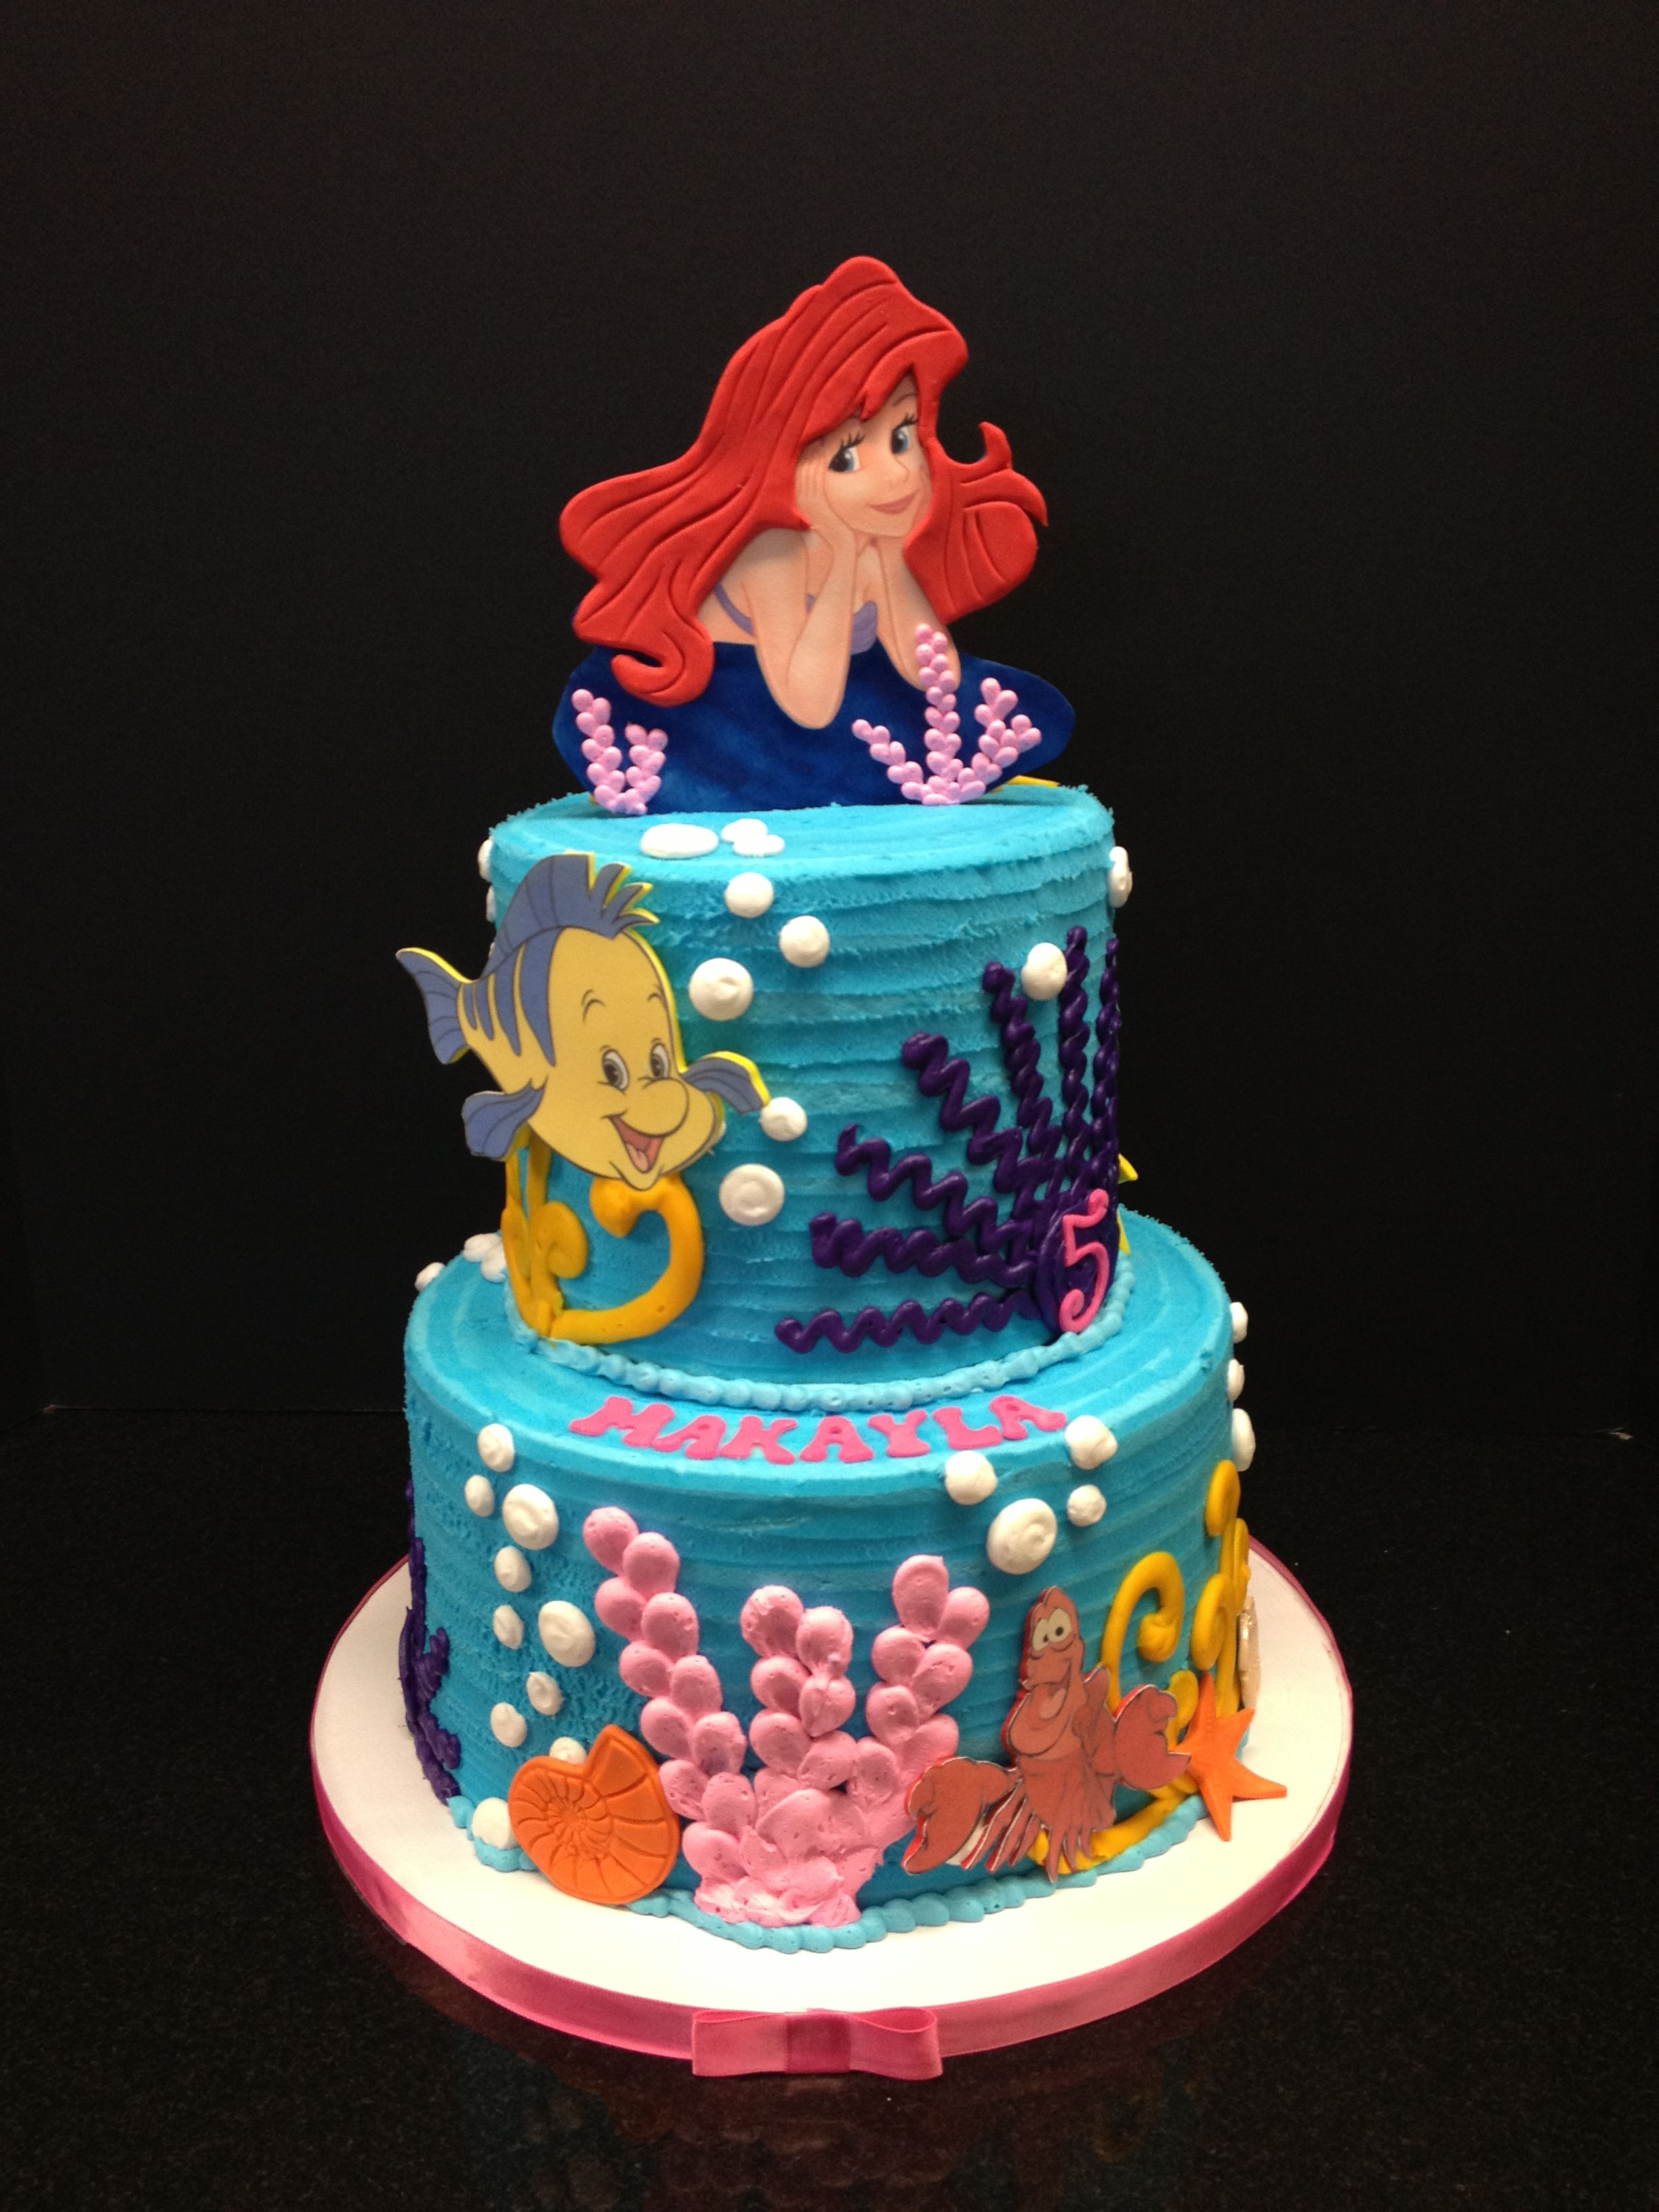 little mermaid cake February 18 2013 at 2448 3264 in